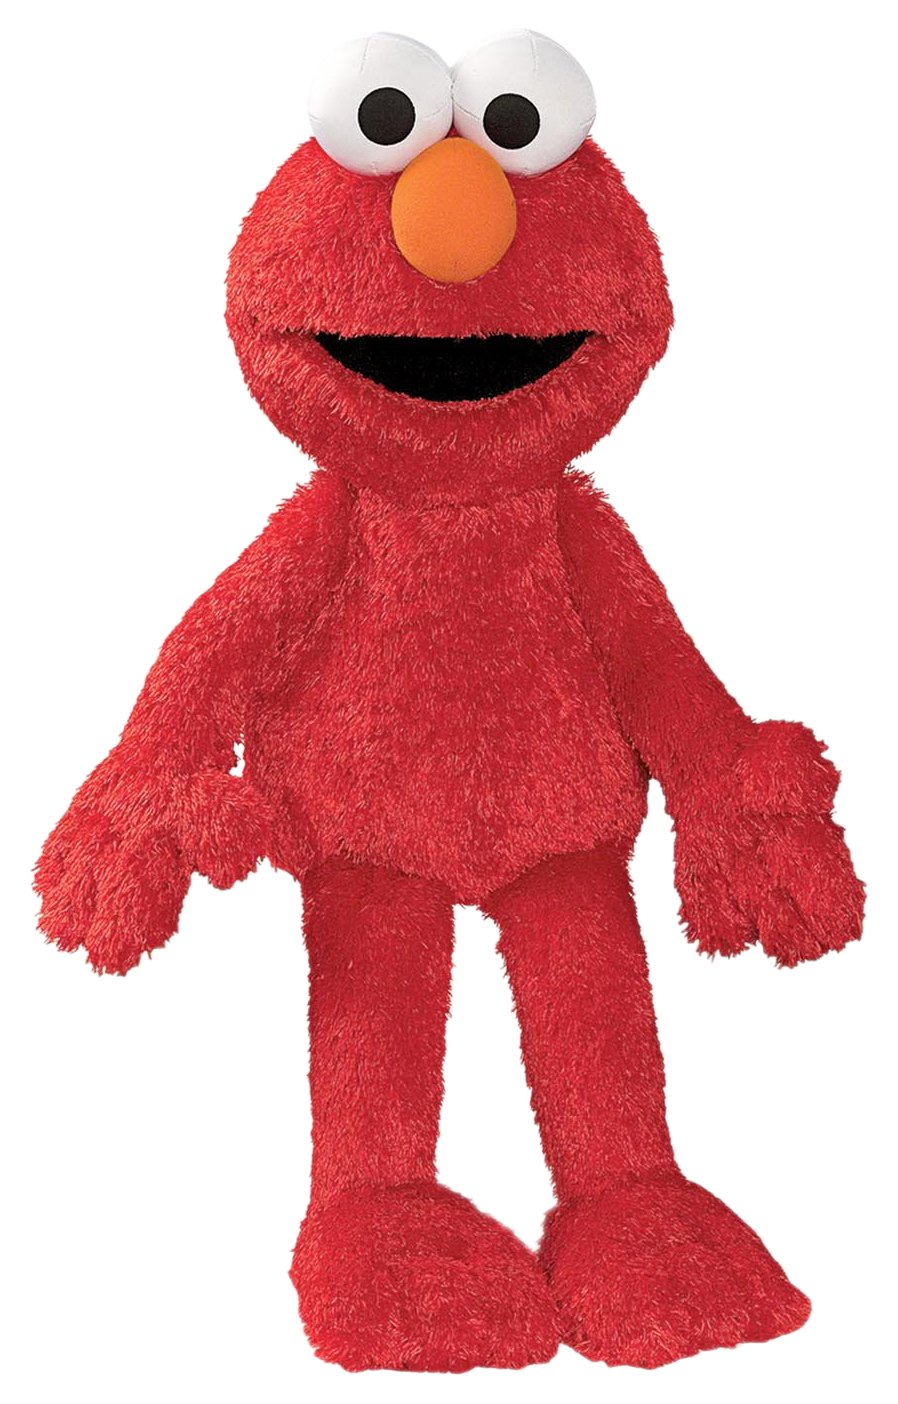 GUND Sesame Street Elmo Stuffed Animal, 20 inches 075943